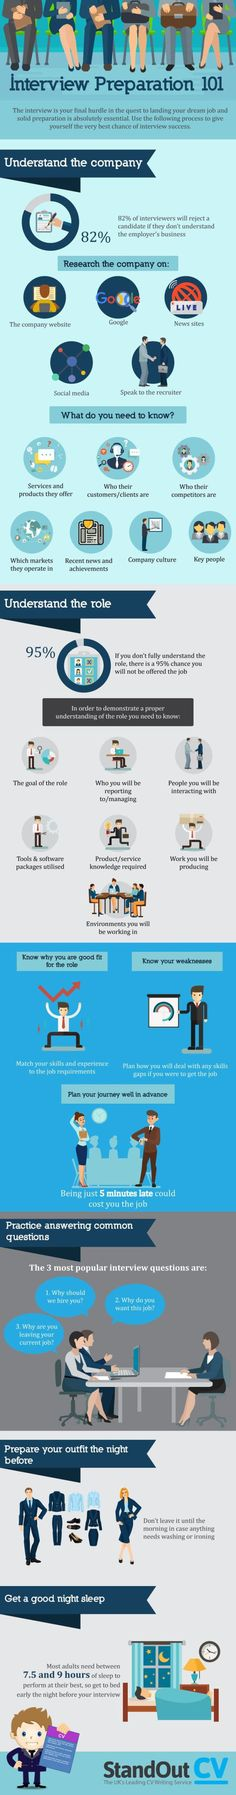 Career infographic : Interview Preparation 101 #Infographic #Career #Interview // Career Advice & Ide